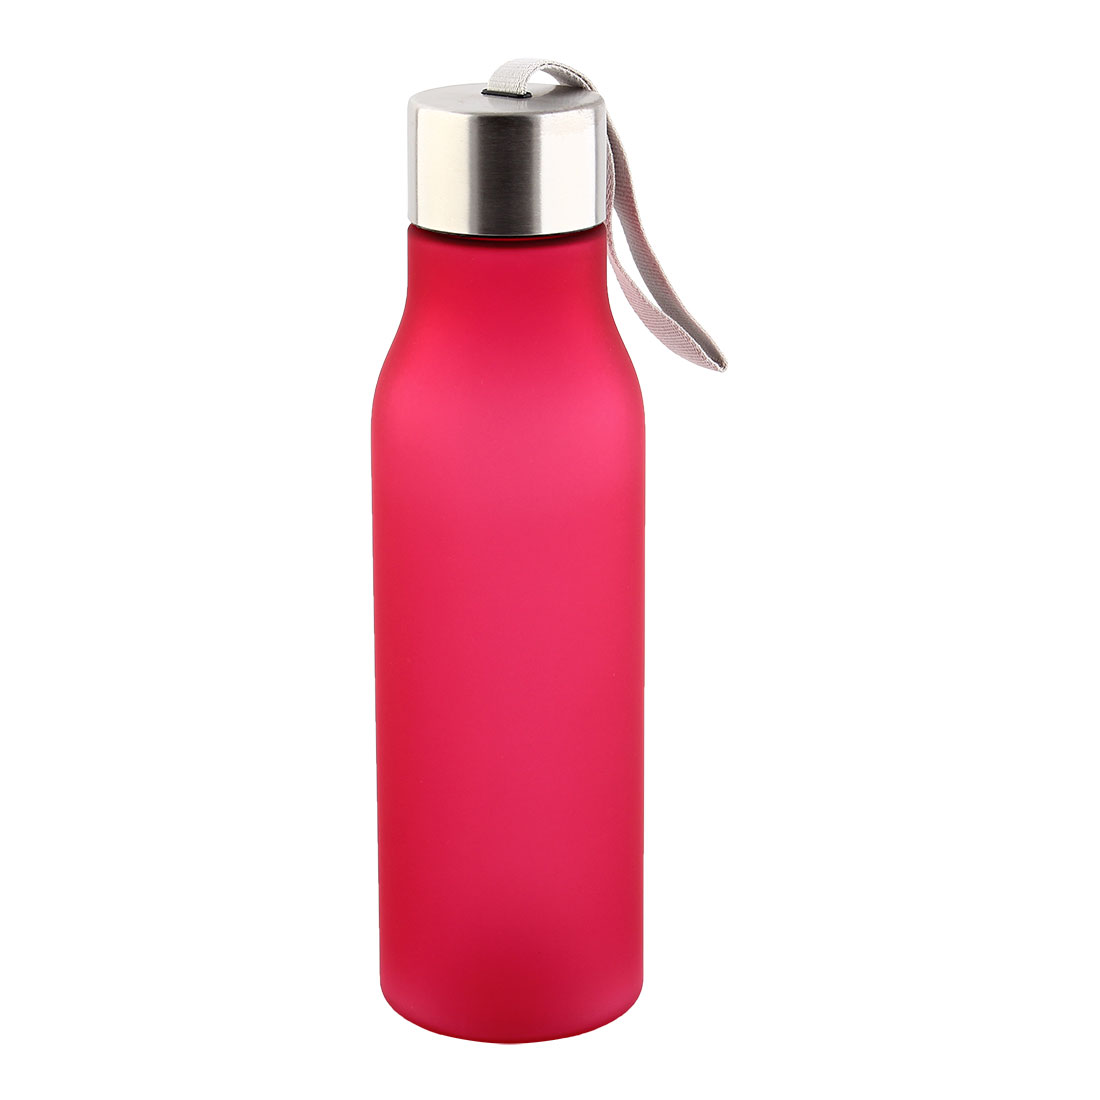 Outdoor Plastic Frosted Water Bottle Portable Fruit Juice Mug Running Cycling Cup Camping Hiking Kettle Fuchsia 570ml